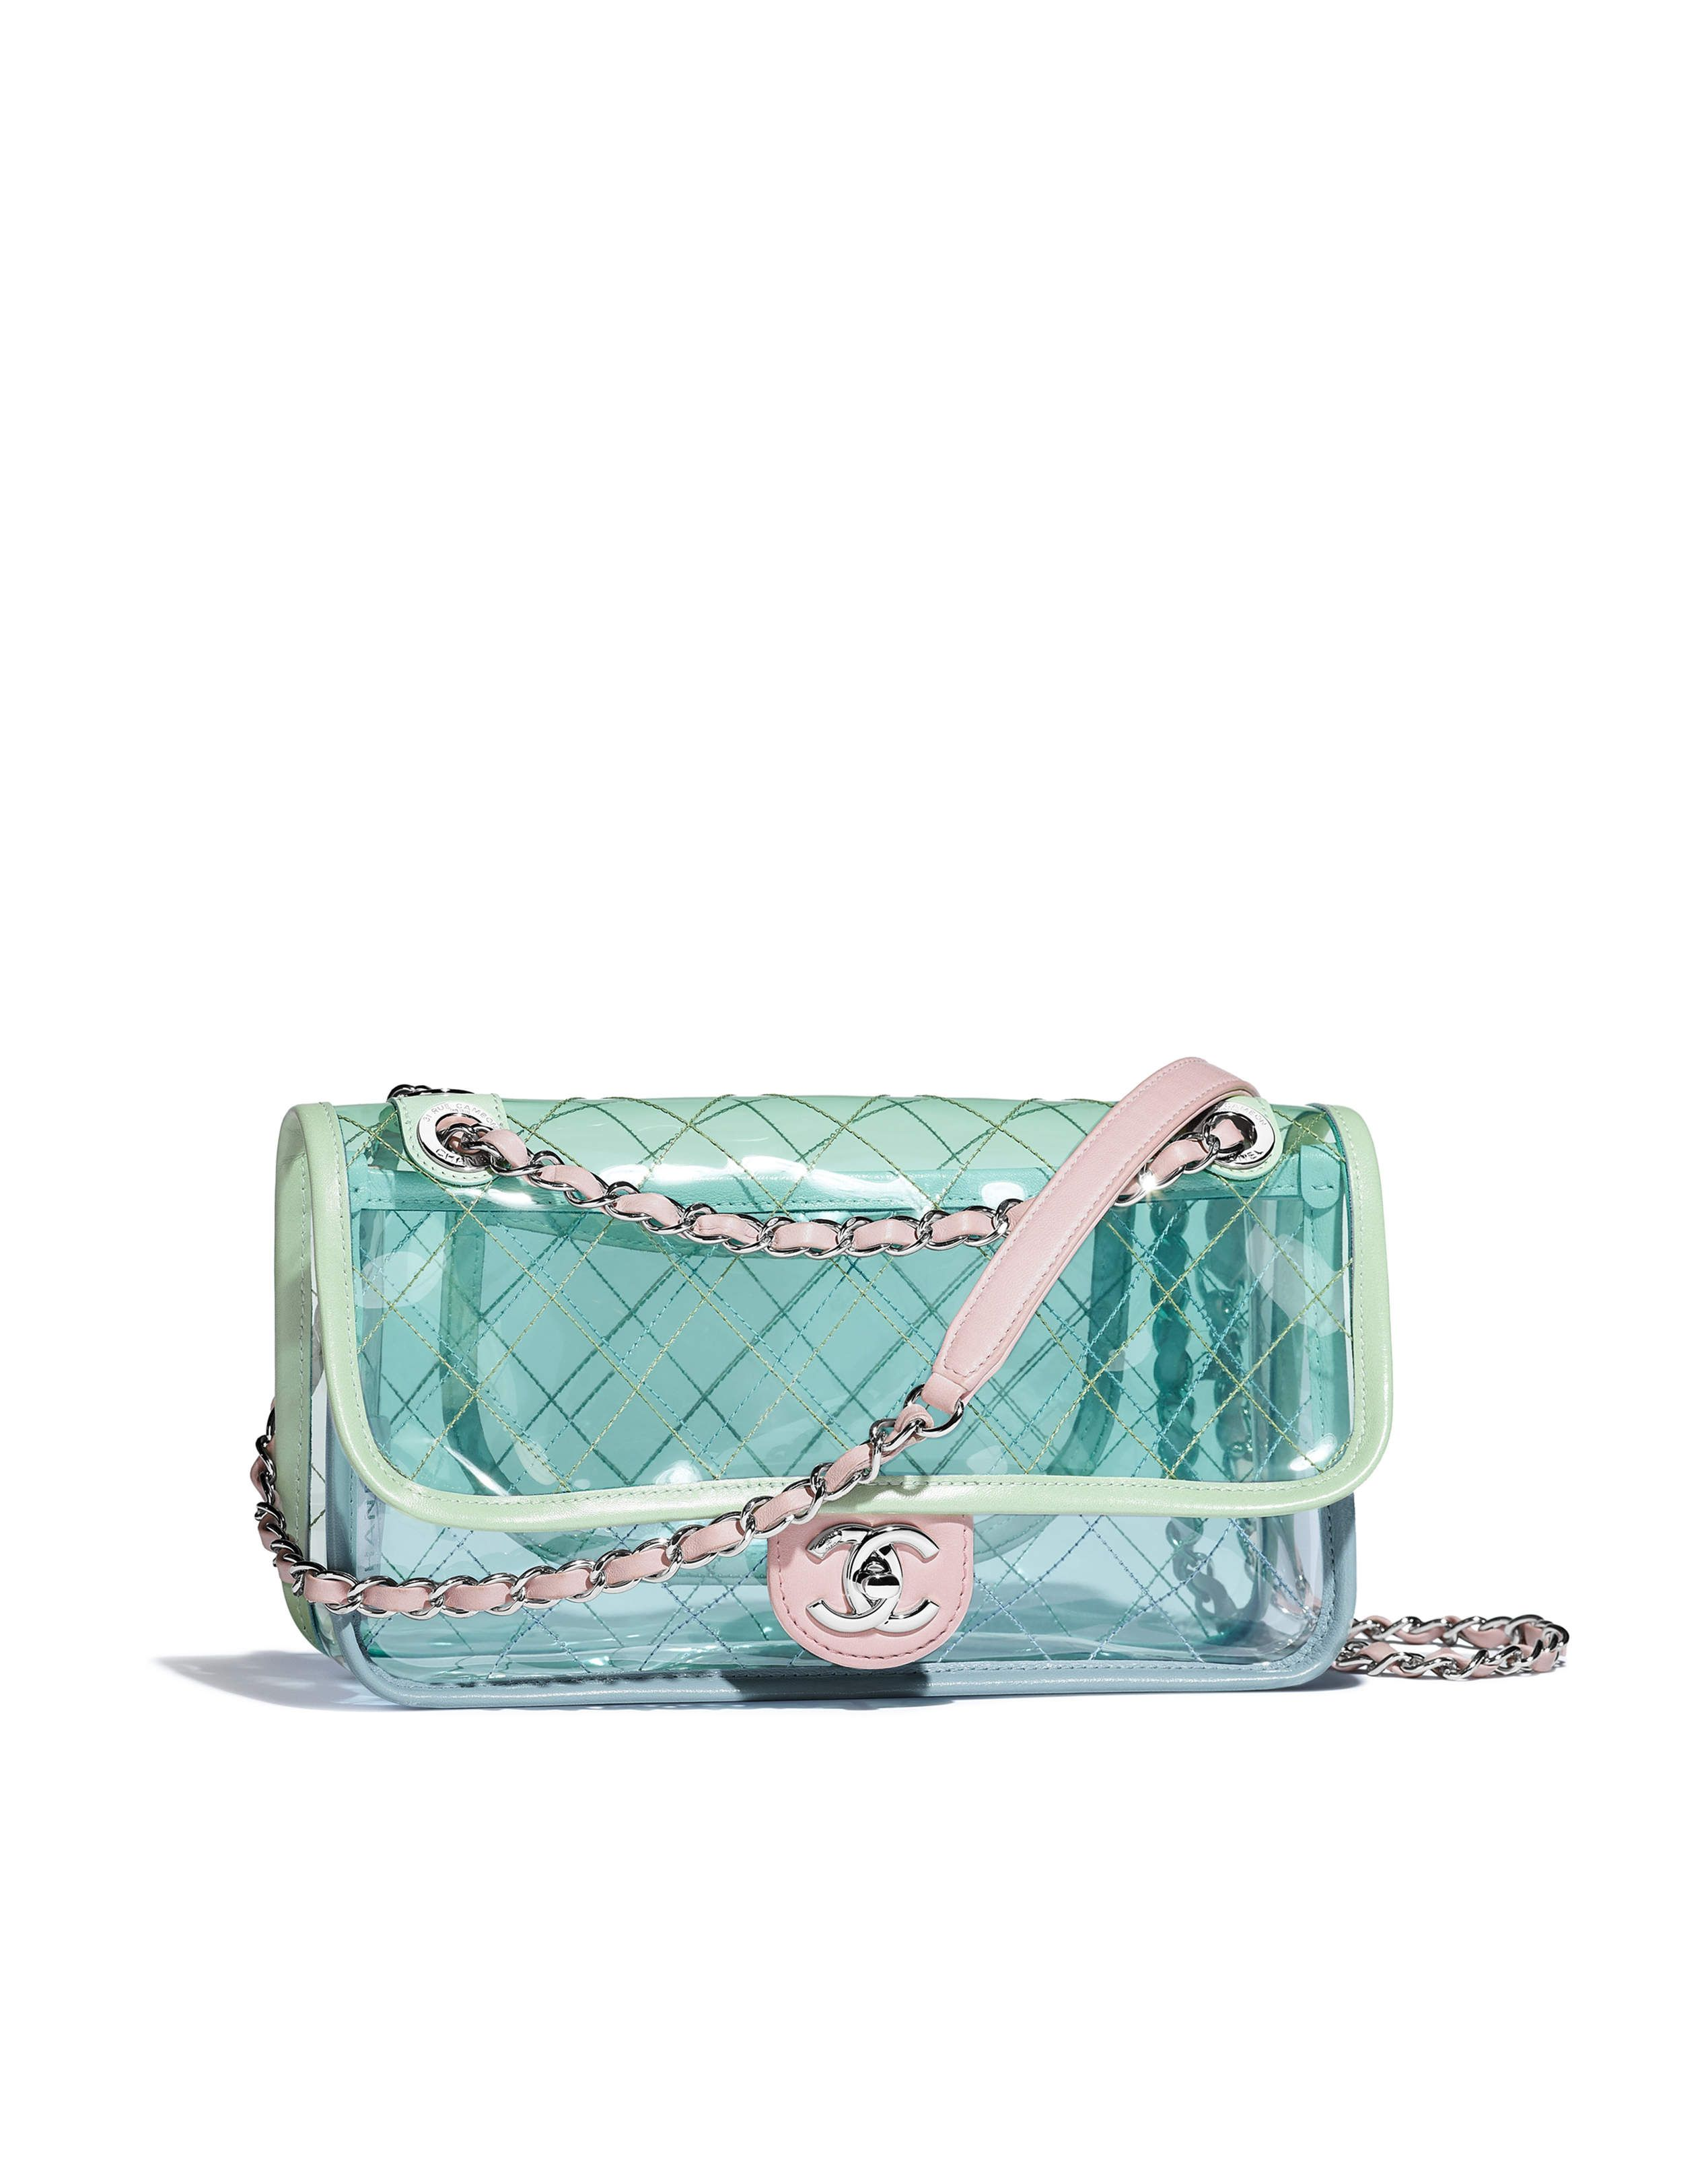 ccd6cbc74a2 Flap bag, pvc, lambskin & silver-tone metal-blue, green & pink - CHANEL